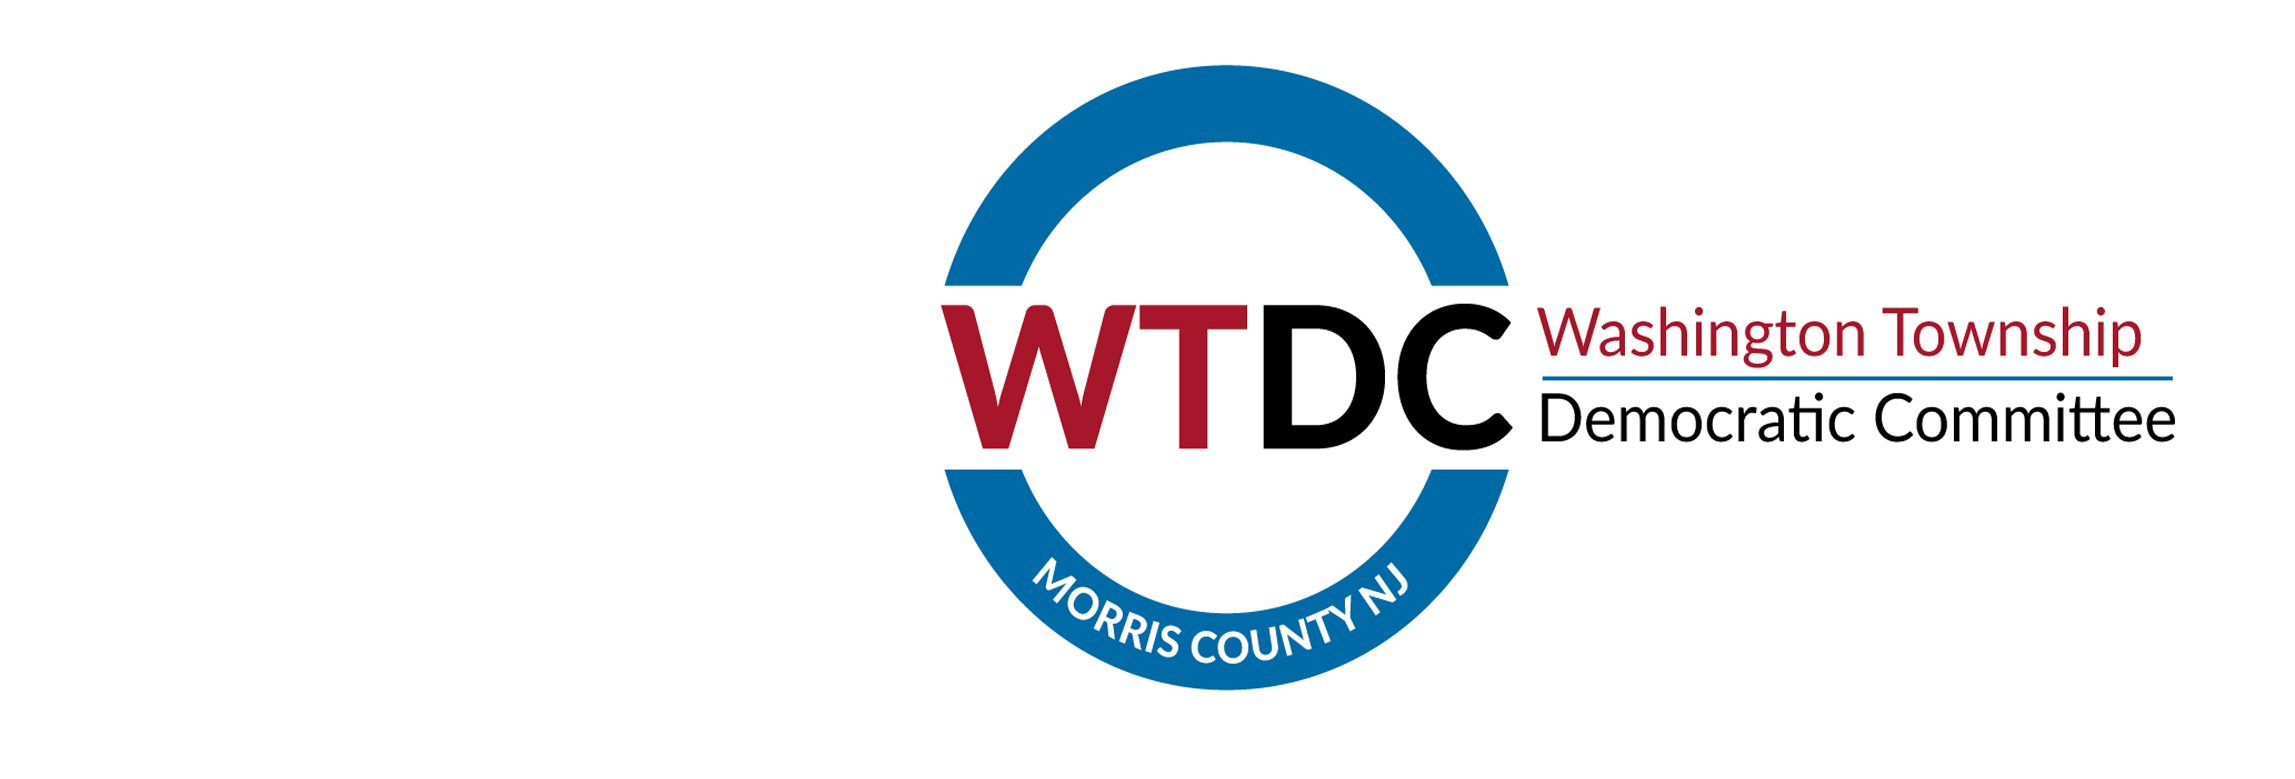 Washington Township Democratic Committee (Morris County)